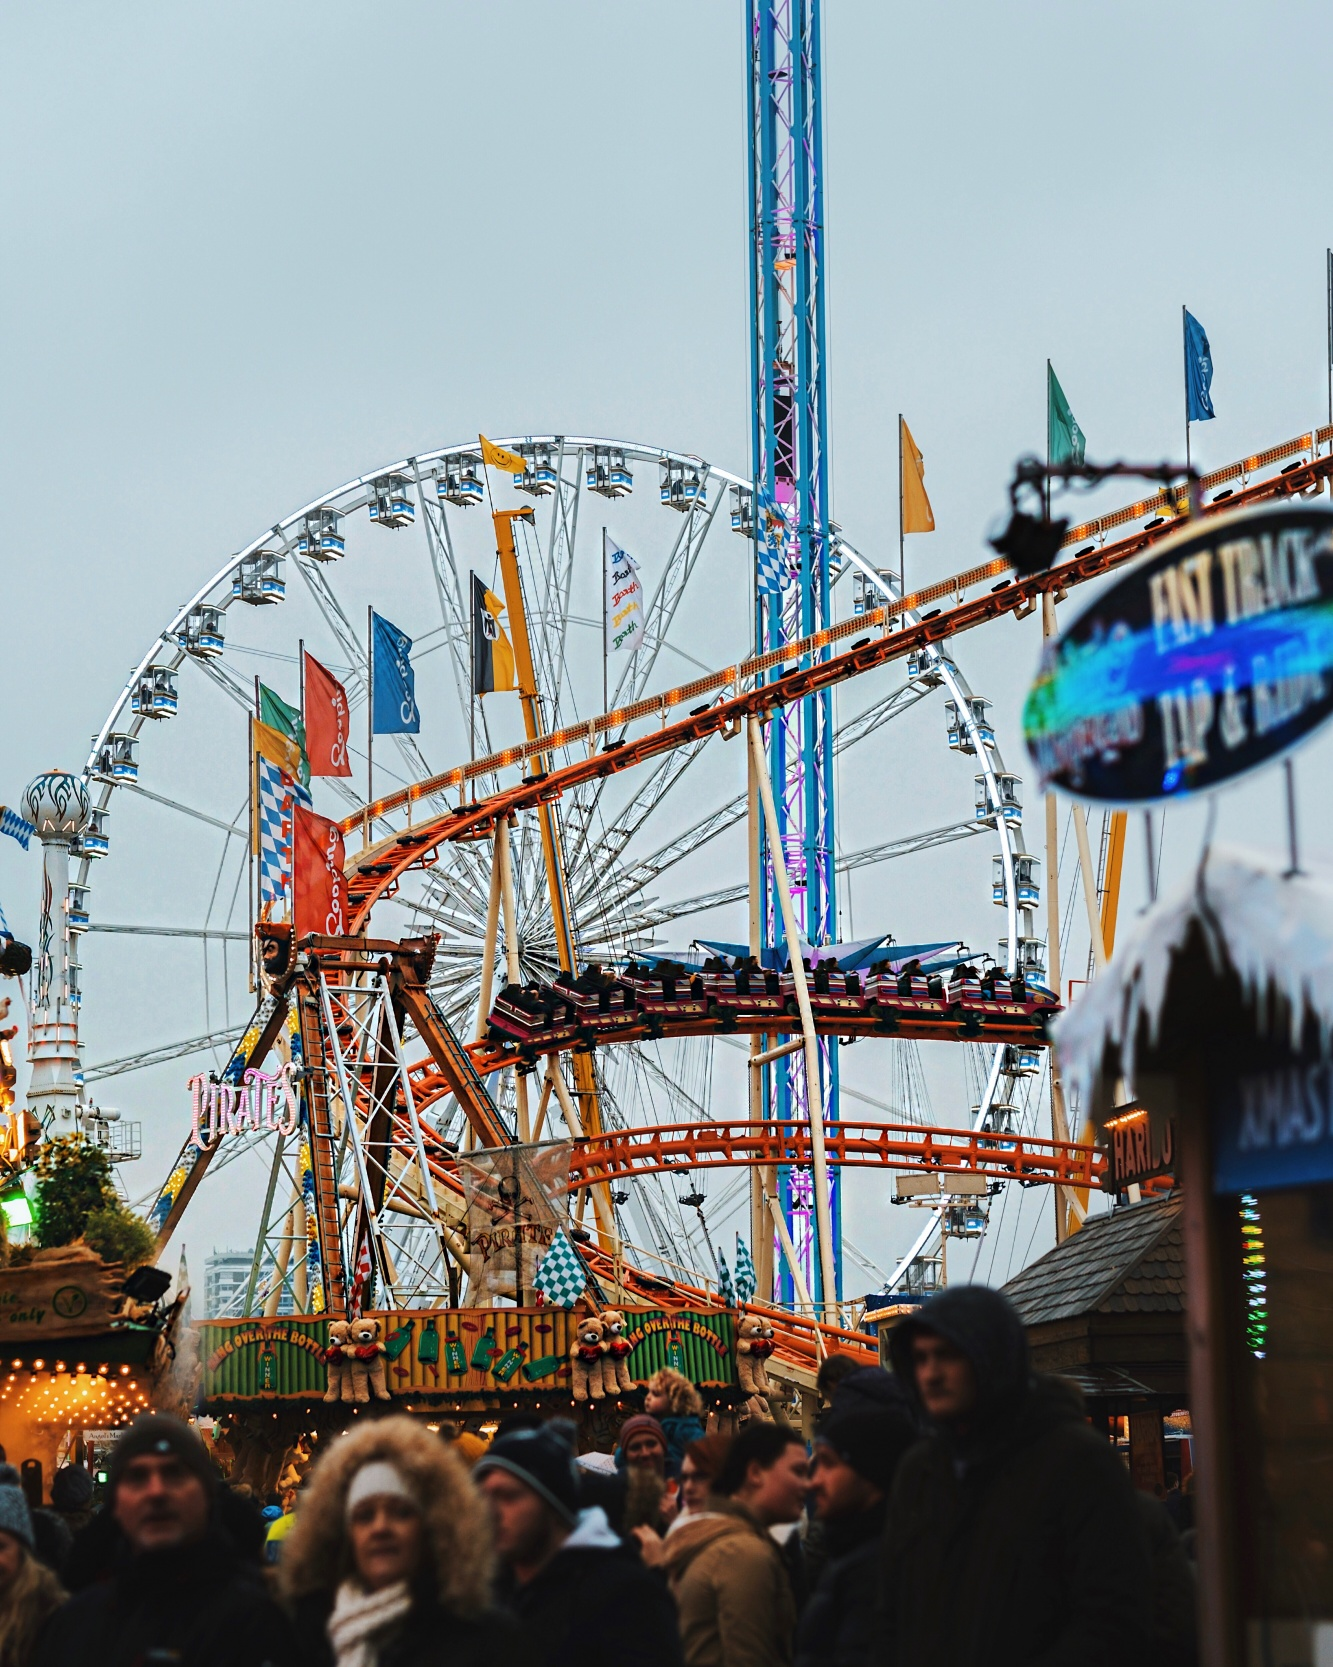 Hyde Park Winter Wonderland | Three of the best Christmas markets in London that you must visit